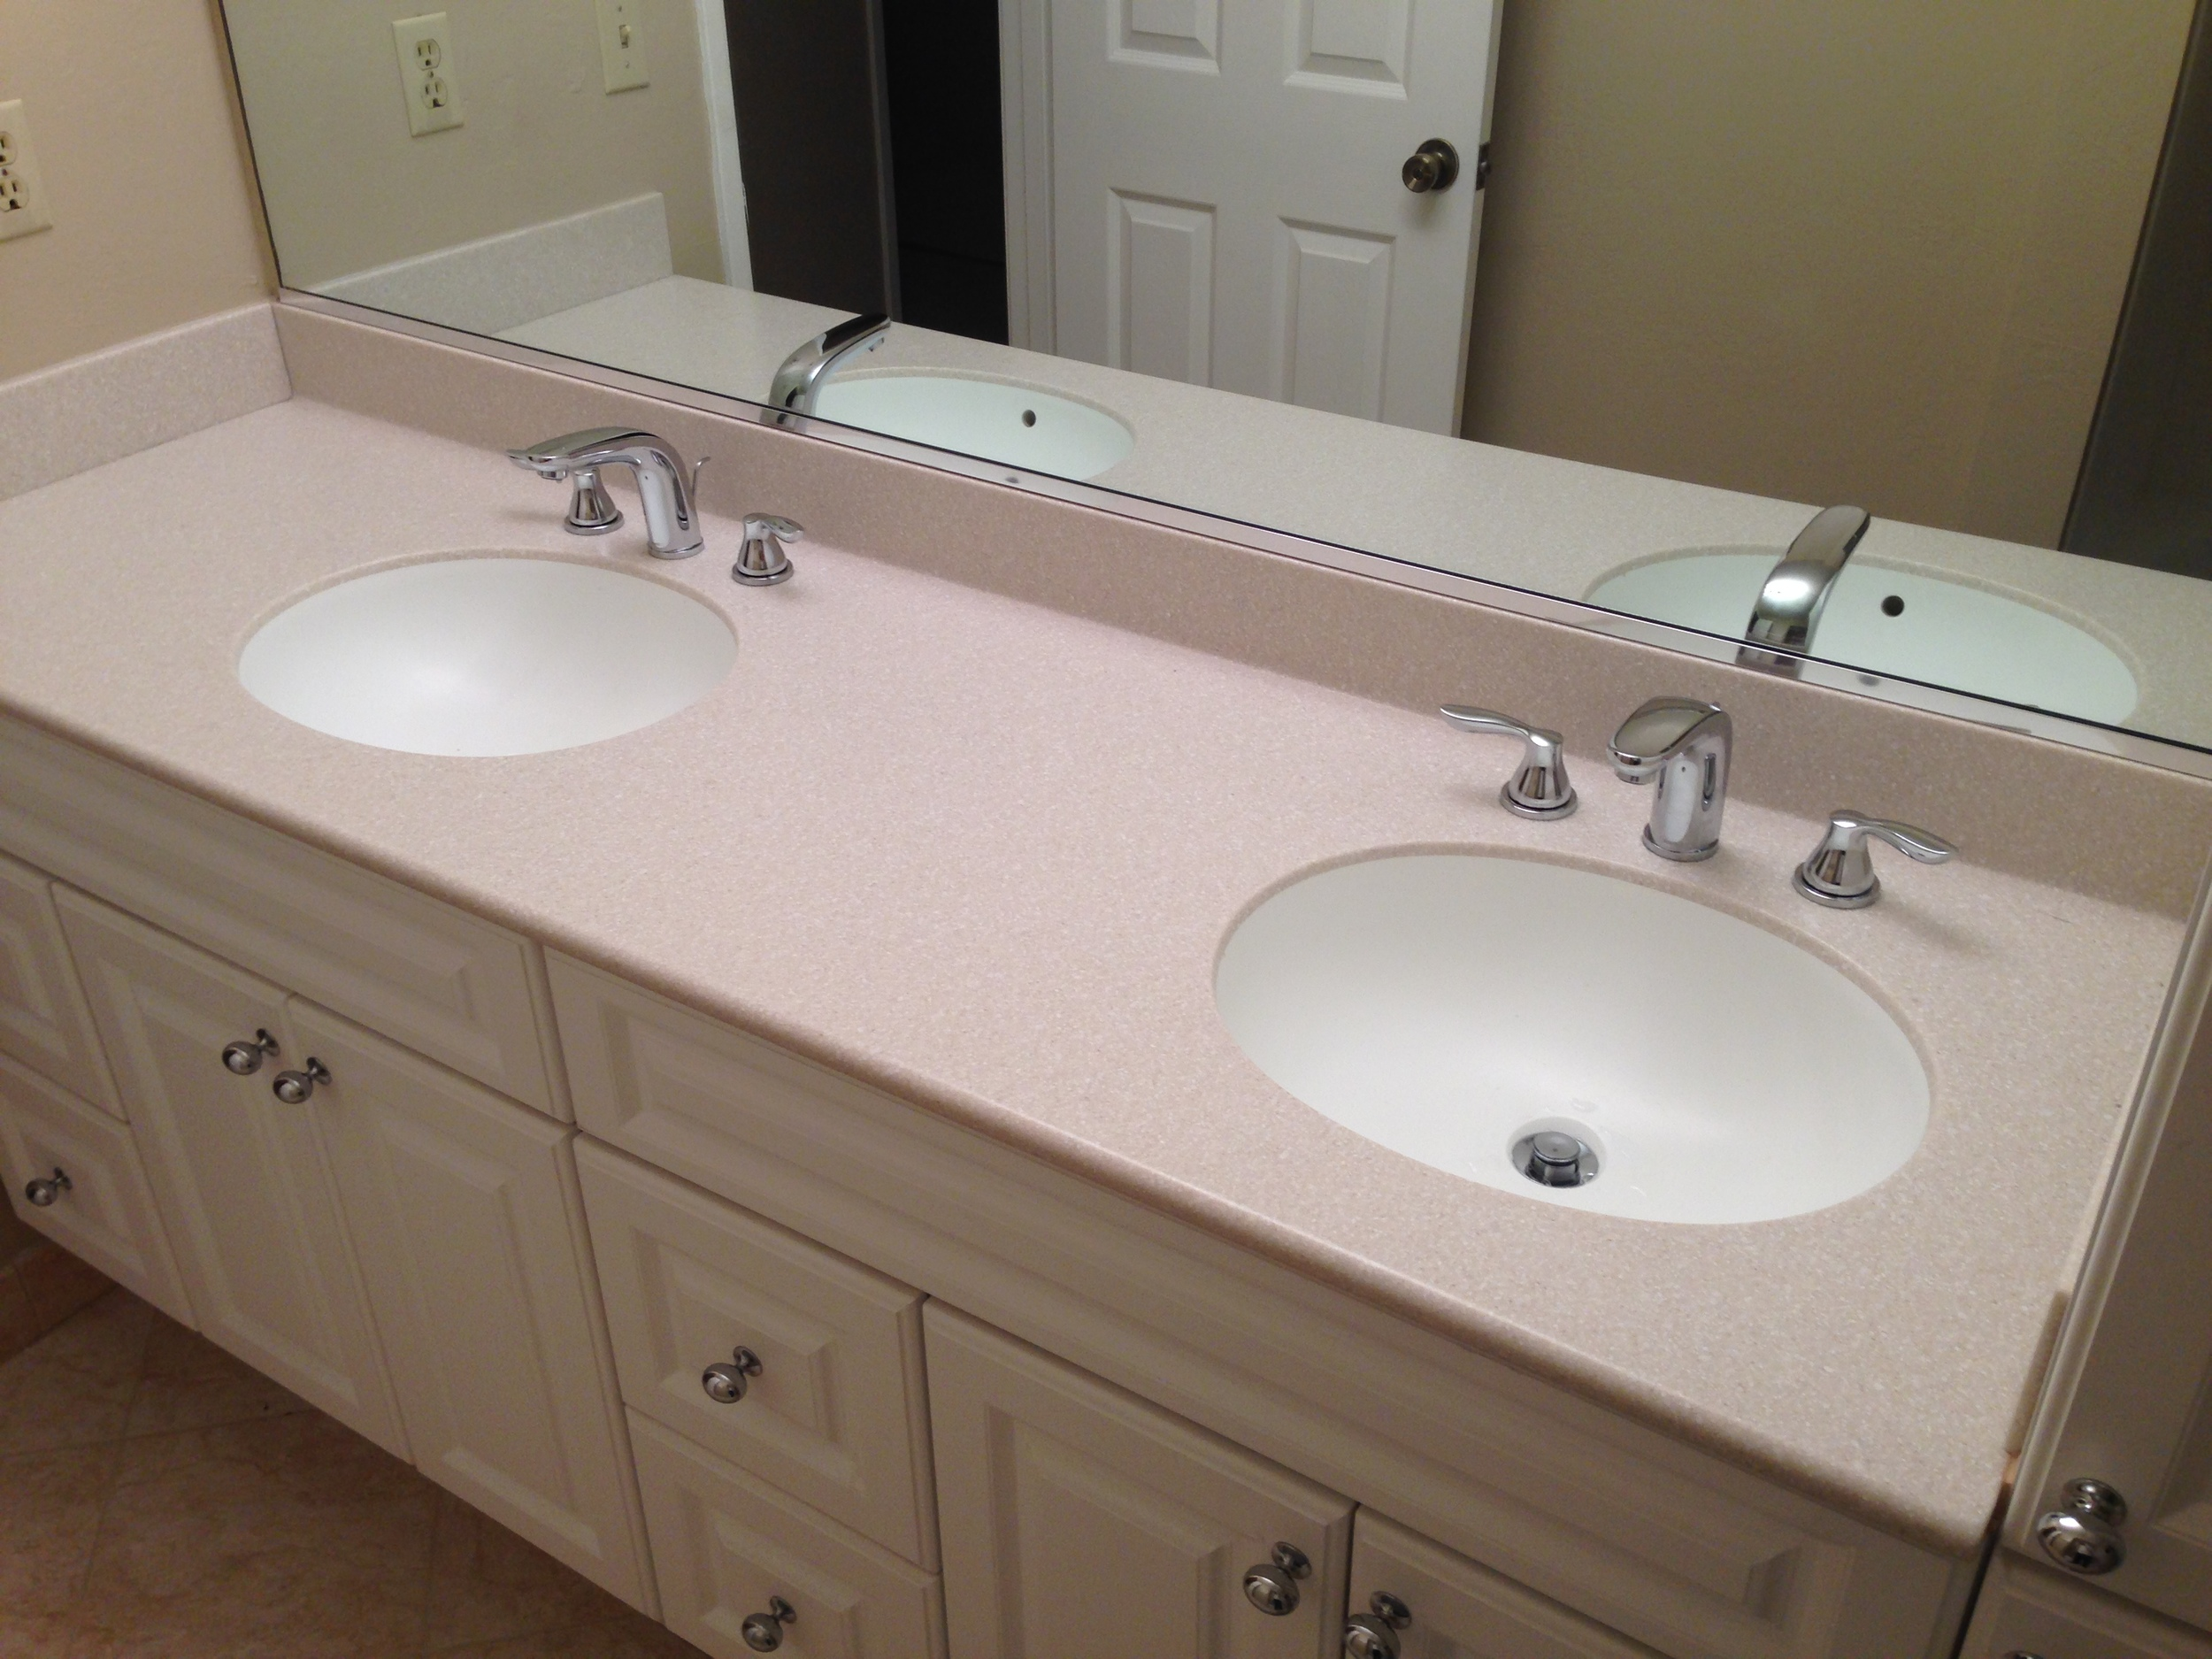 Dual Wide Spread Bathroom Grohe Faucet Install